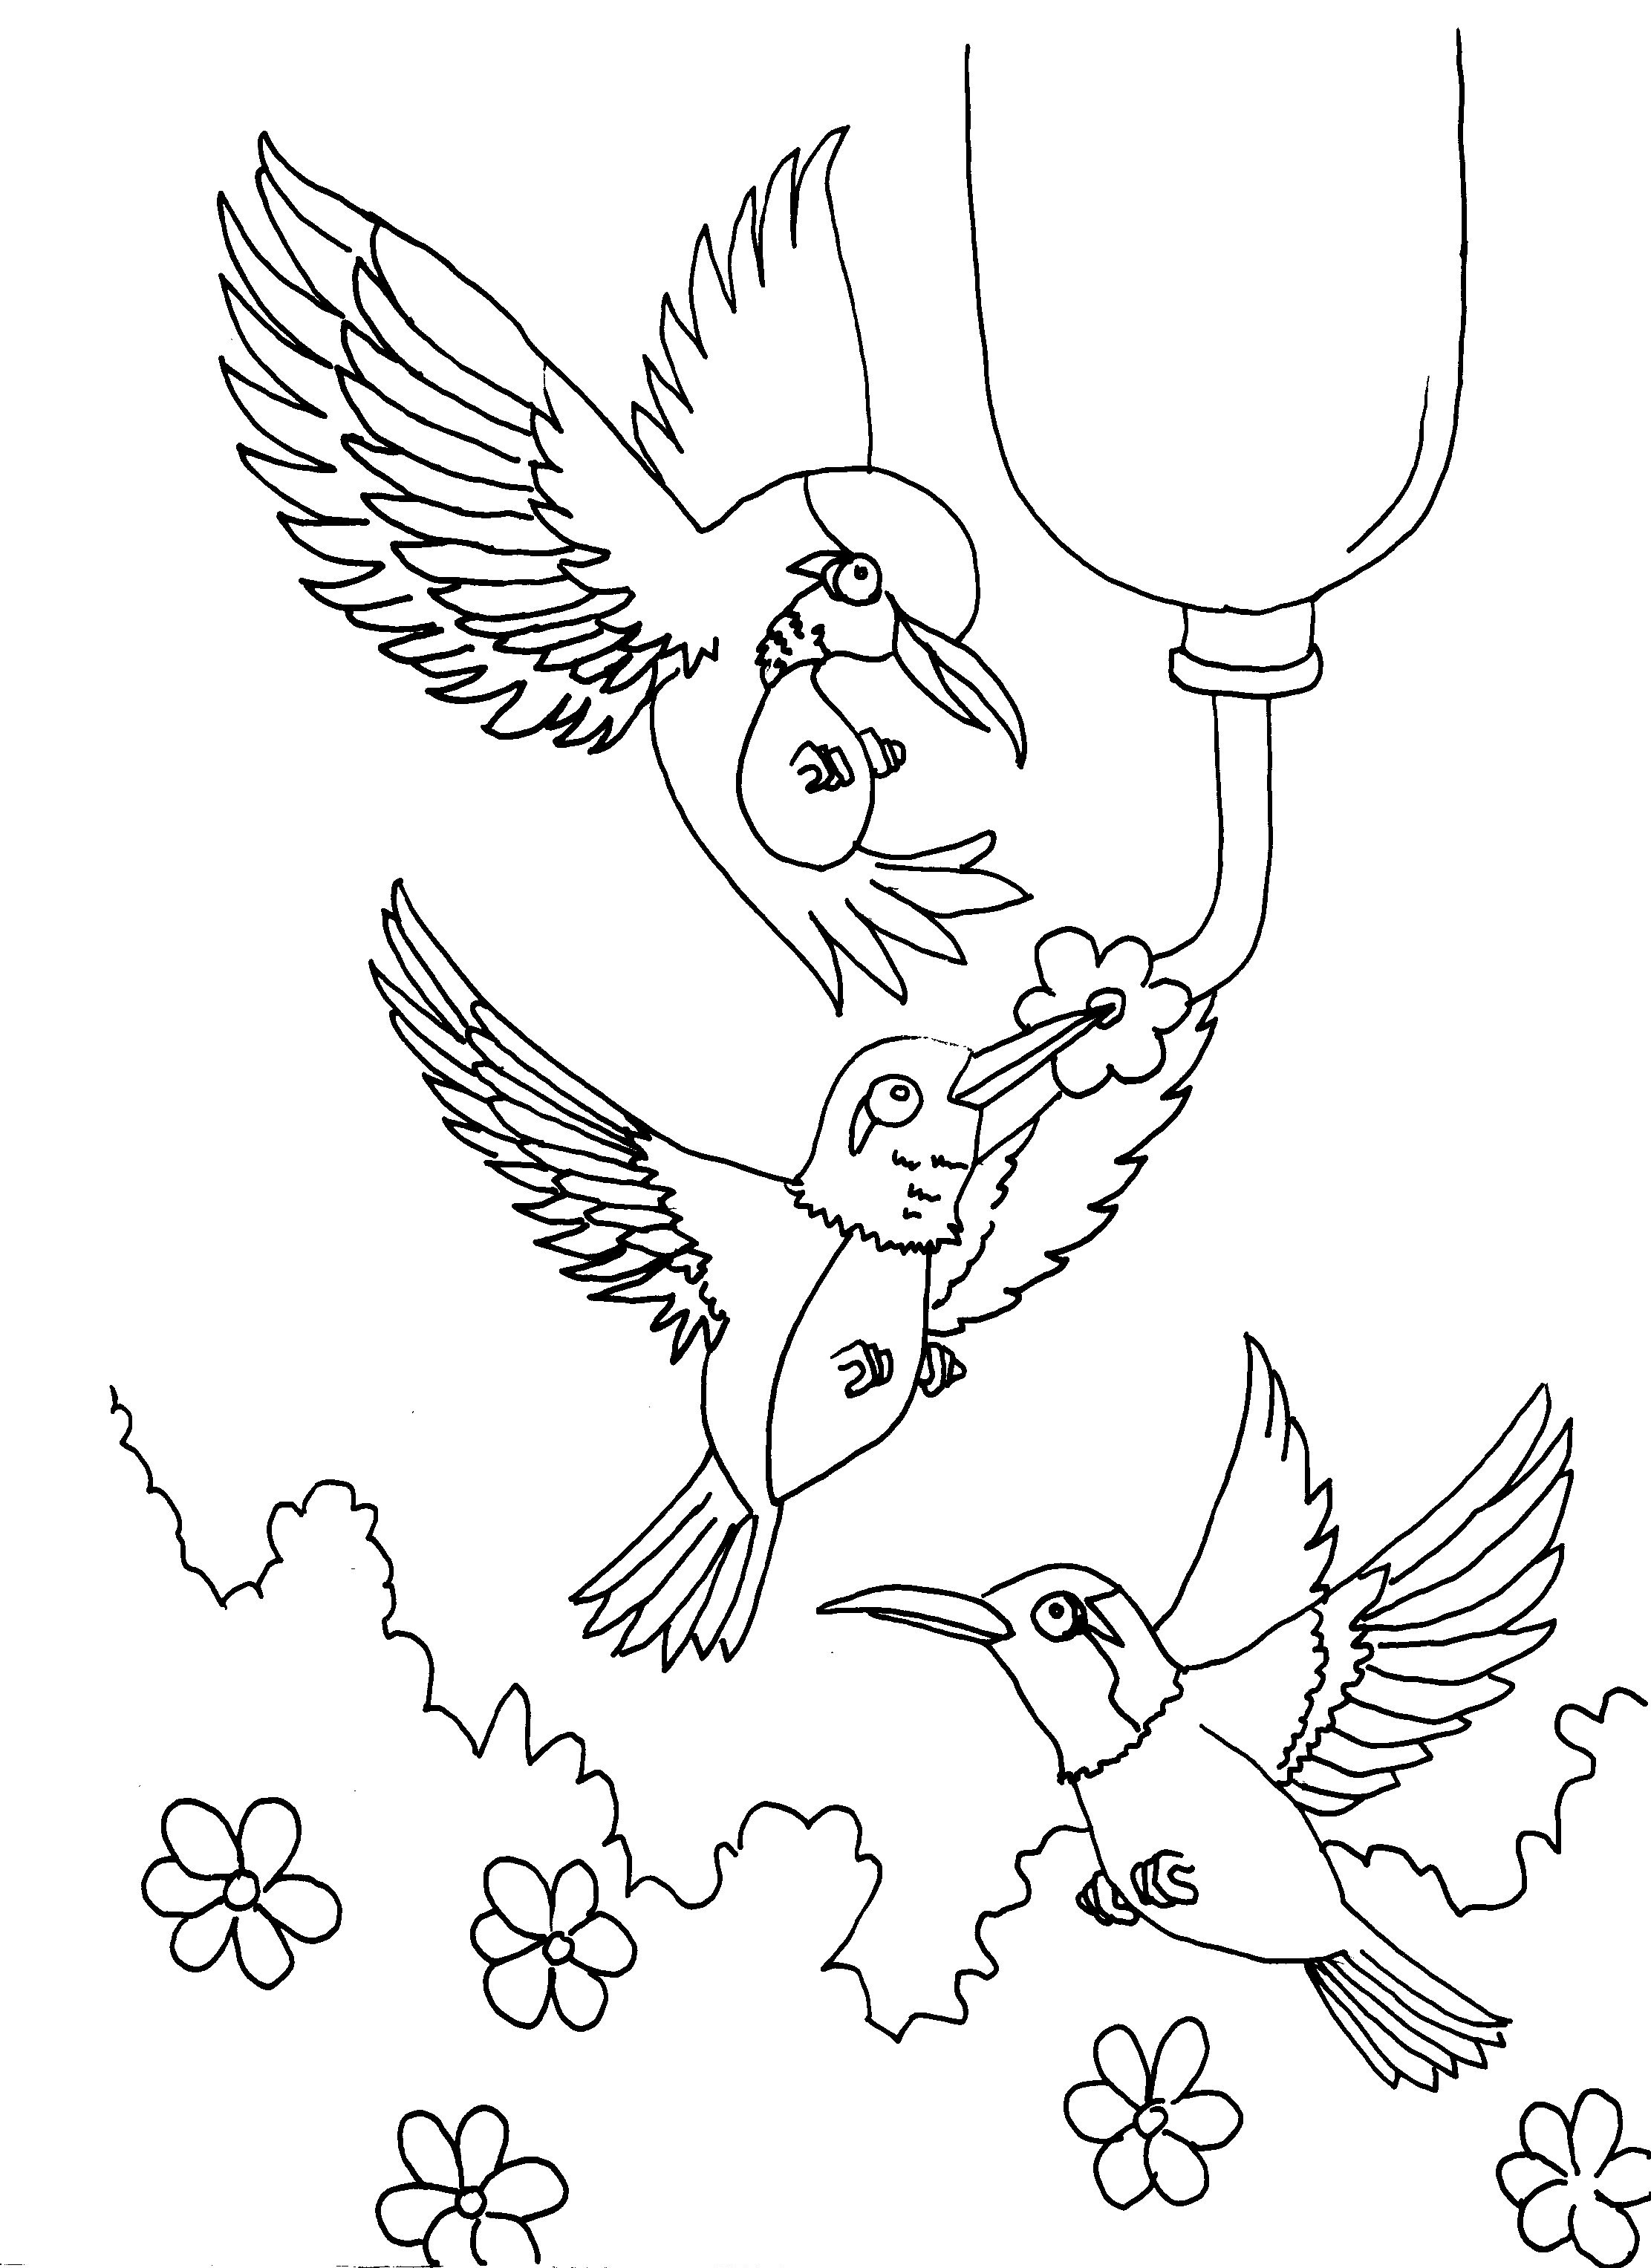 hummingbirds coloring pages hummingbird coloring pages to download and print for free pages hummingbirds coloring